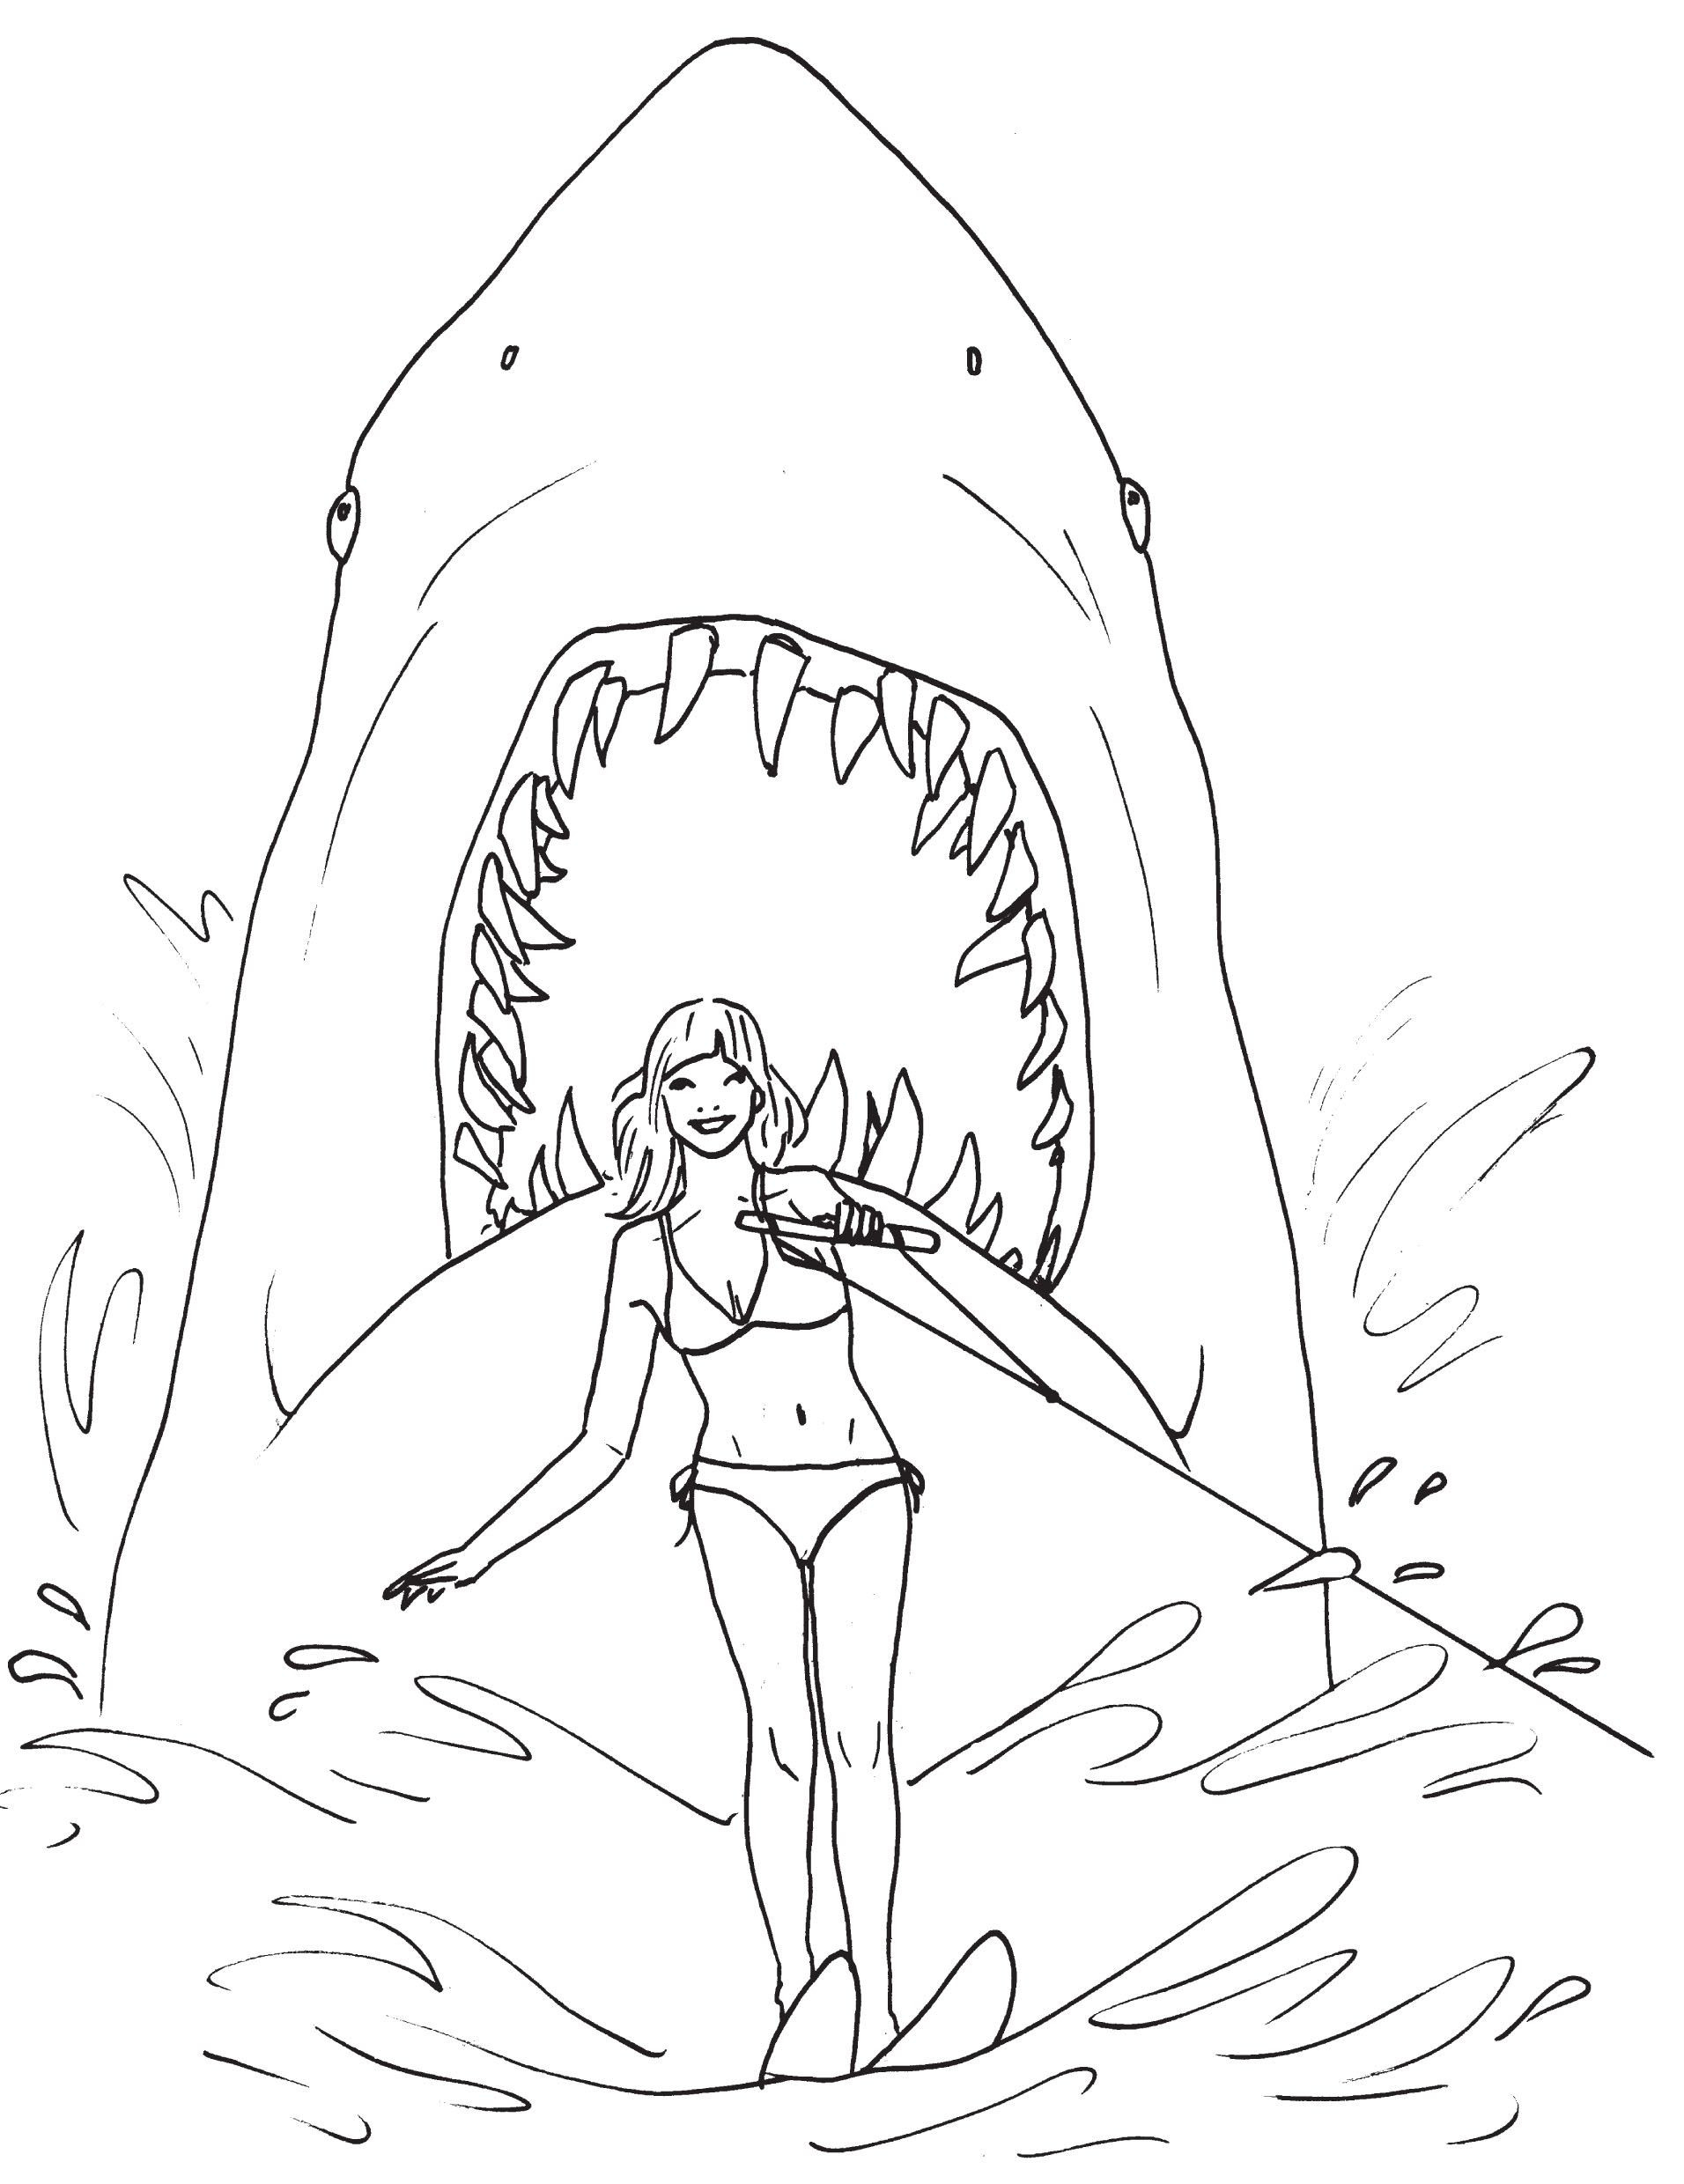 Unbelievable Great White Shark Coloring Pages Pic Styles and Fine ...